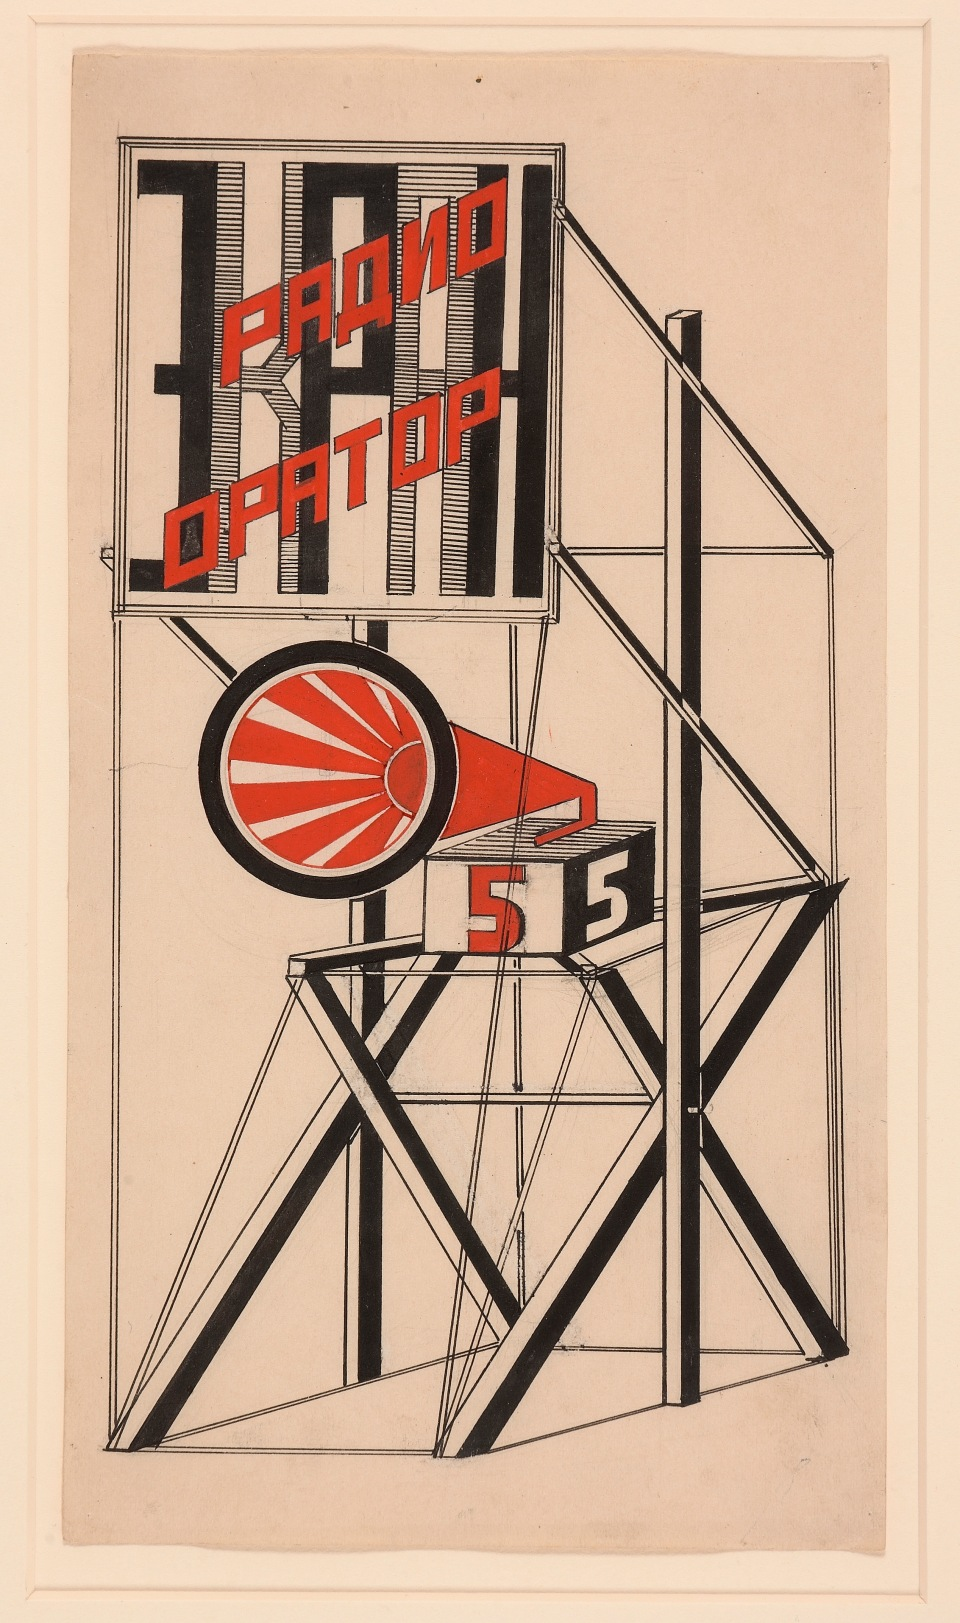 Gustav Klutsis Design for Loudspeaker No.5 1922. Greek State Museum of Contemporary Art – Costakis Collection, Thessaloniki © ARS, New York and DACS, London 2014.